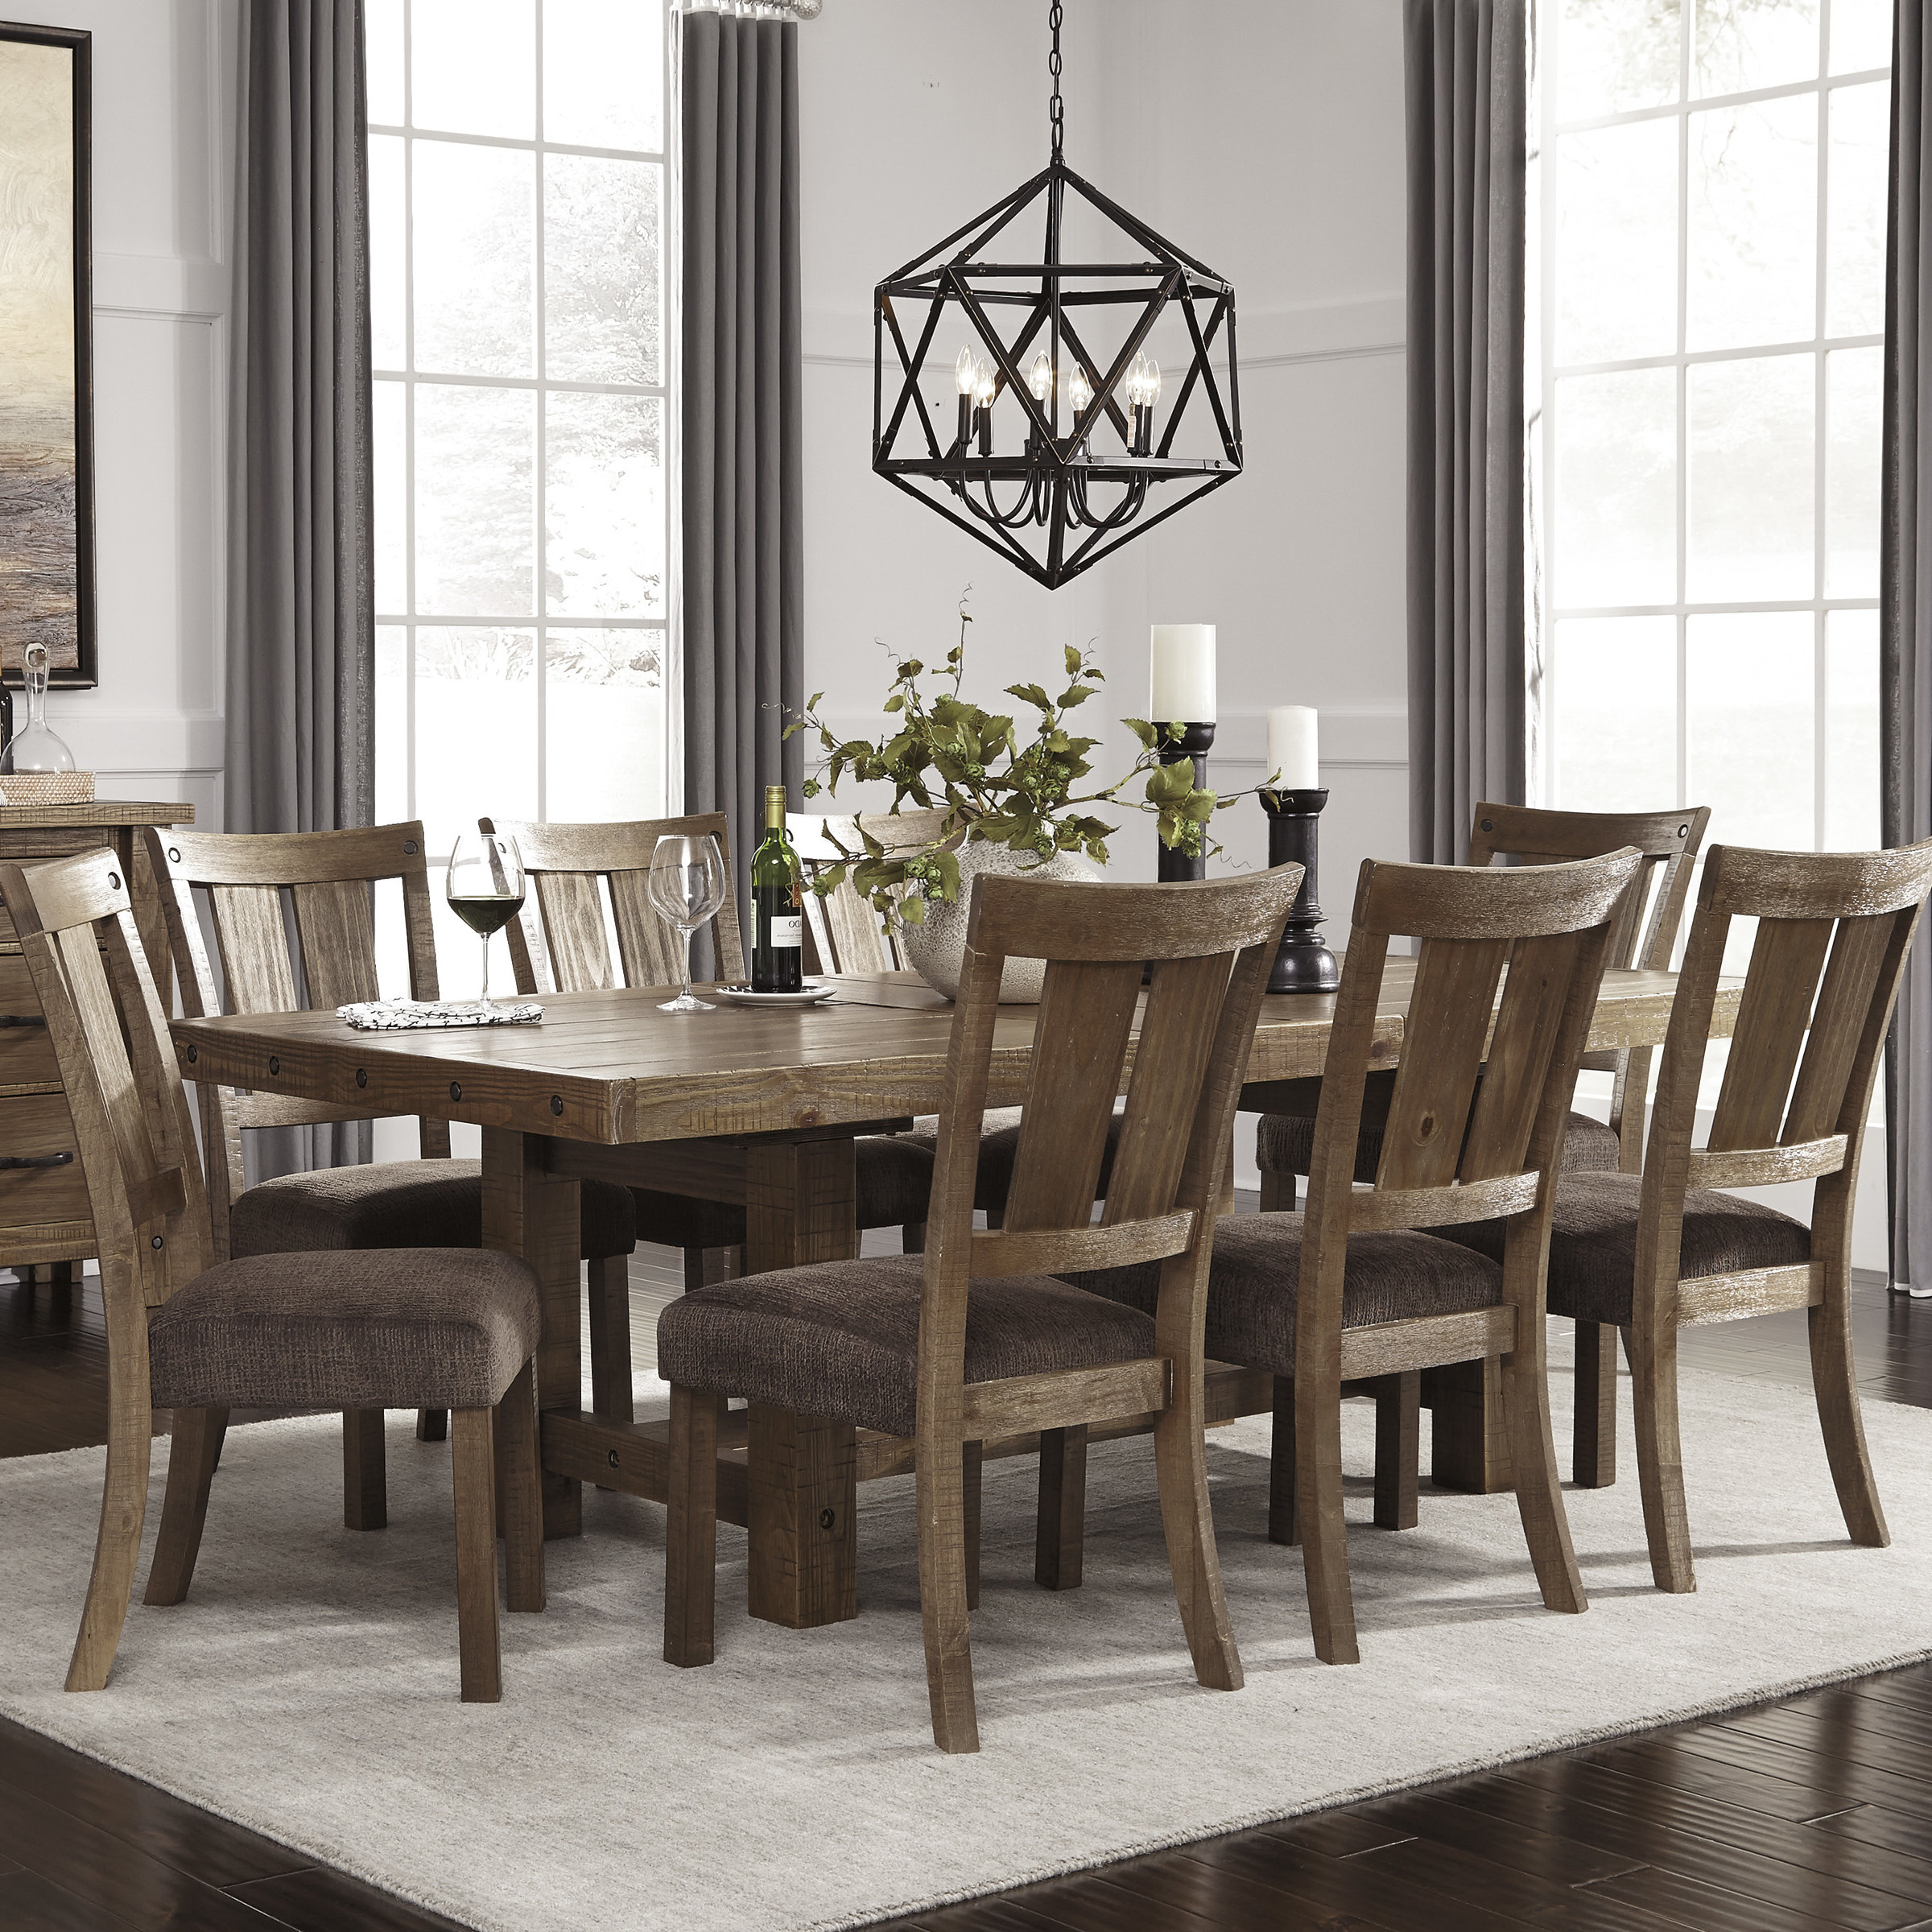 Recent Kitchen & Dining Room Sets You'll Love With Regard To Evellen 5 Piece Solid Wood Dining Sets (Set Of 5) (View 18 of 25)